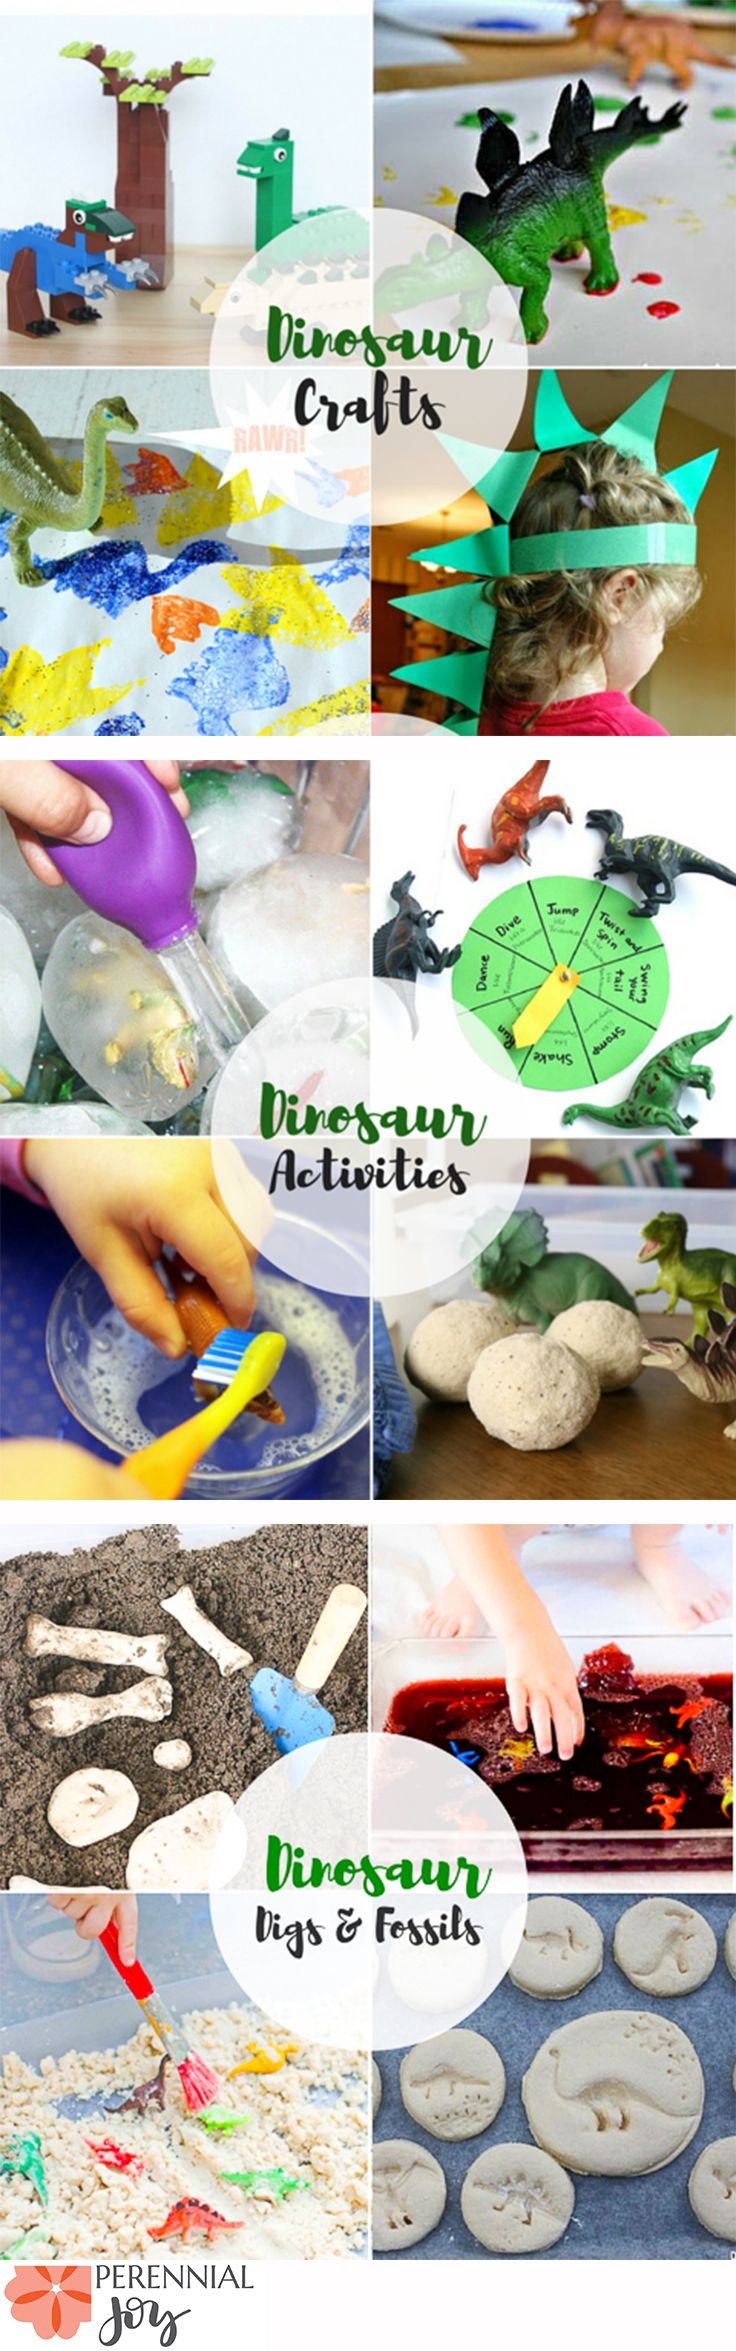 Dinosaur Toddler Activity Roundup! 12 activities to do with your dino loving child. Use them for birthday parties, learning archaeology in homeschool, or fun sensory crafts to do with your child. www.perennialjoy.com